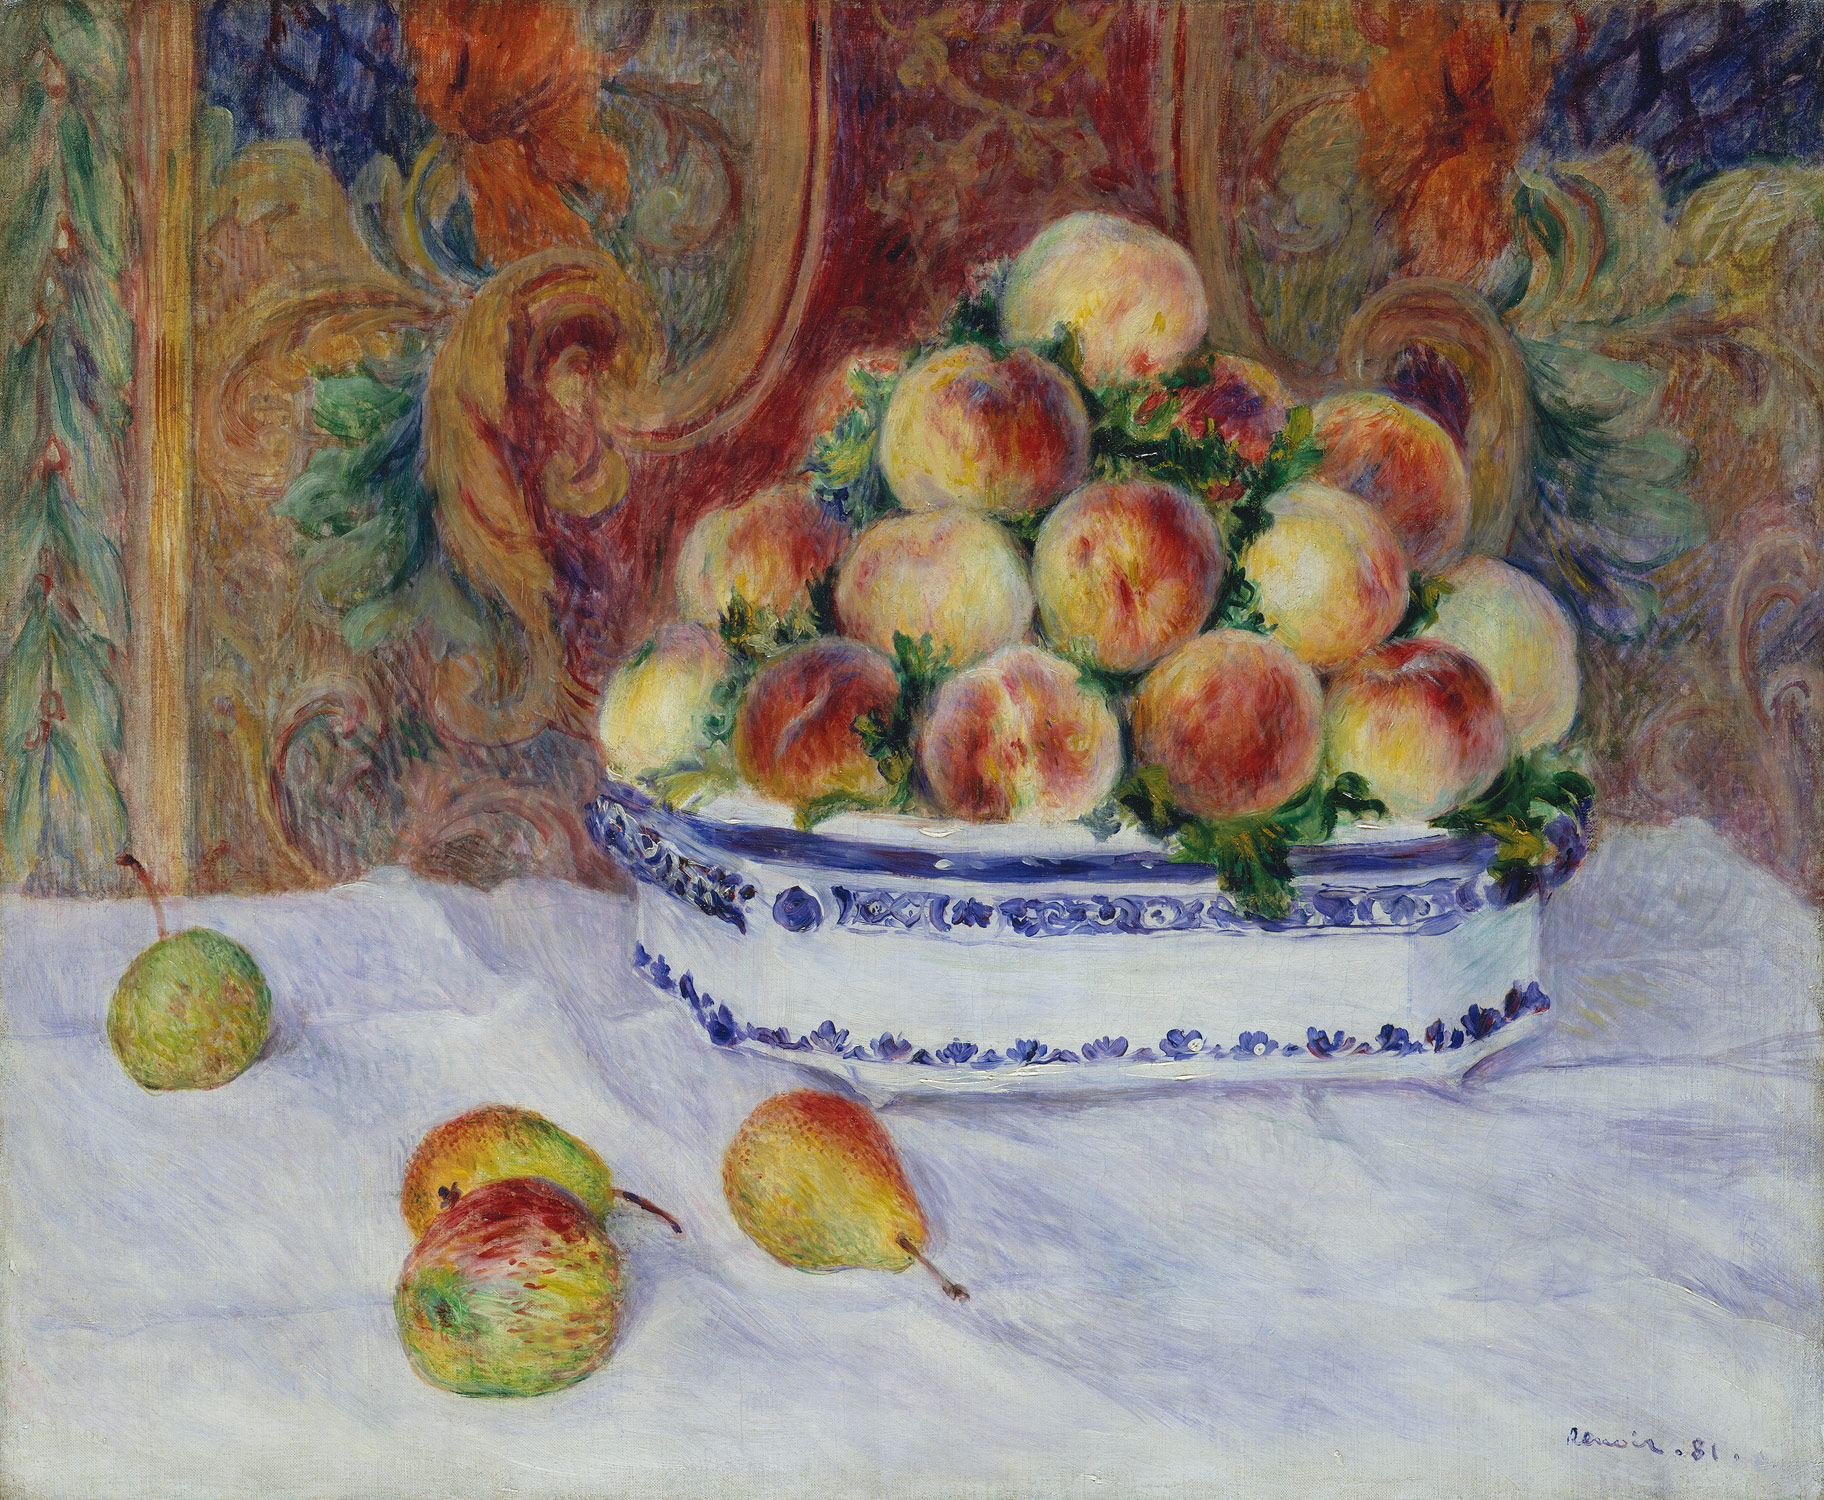 e renoir essay heilbrunn timeline of art still life peaches